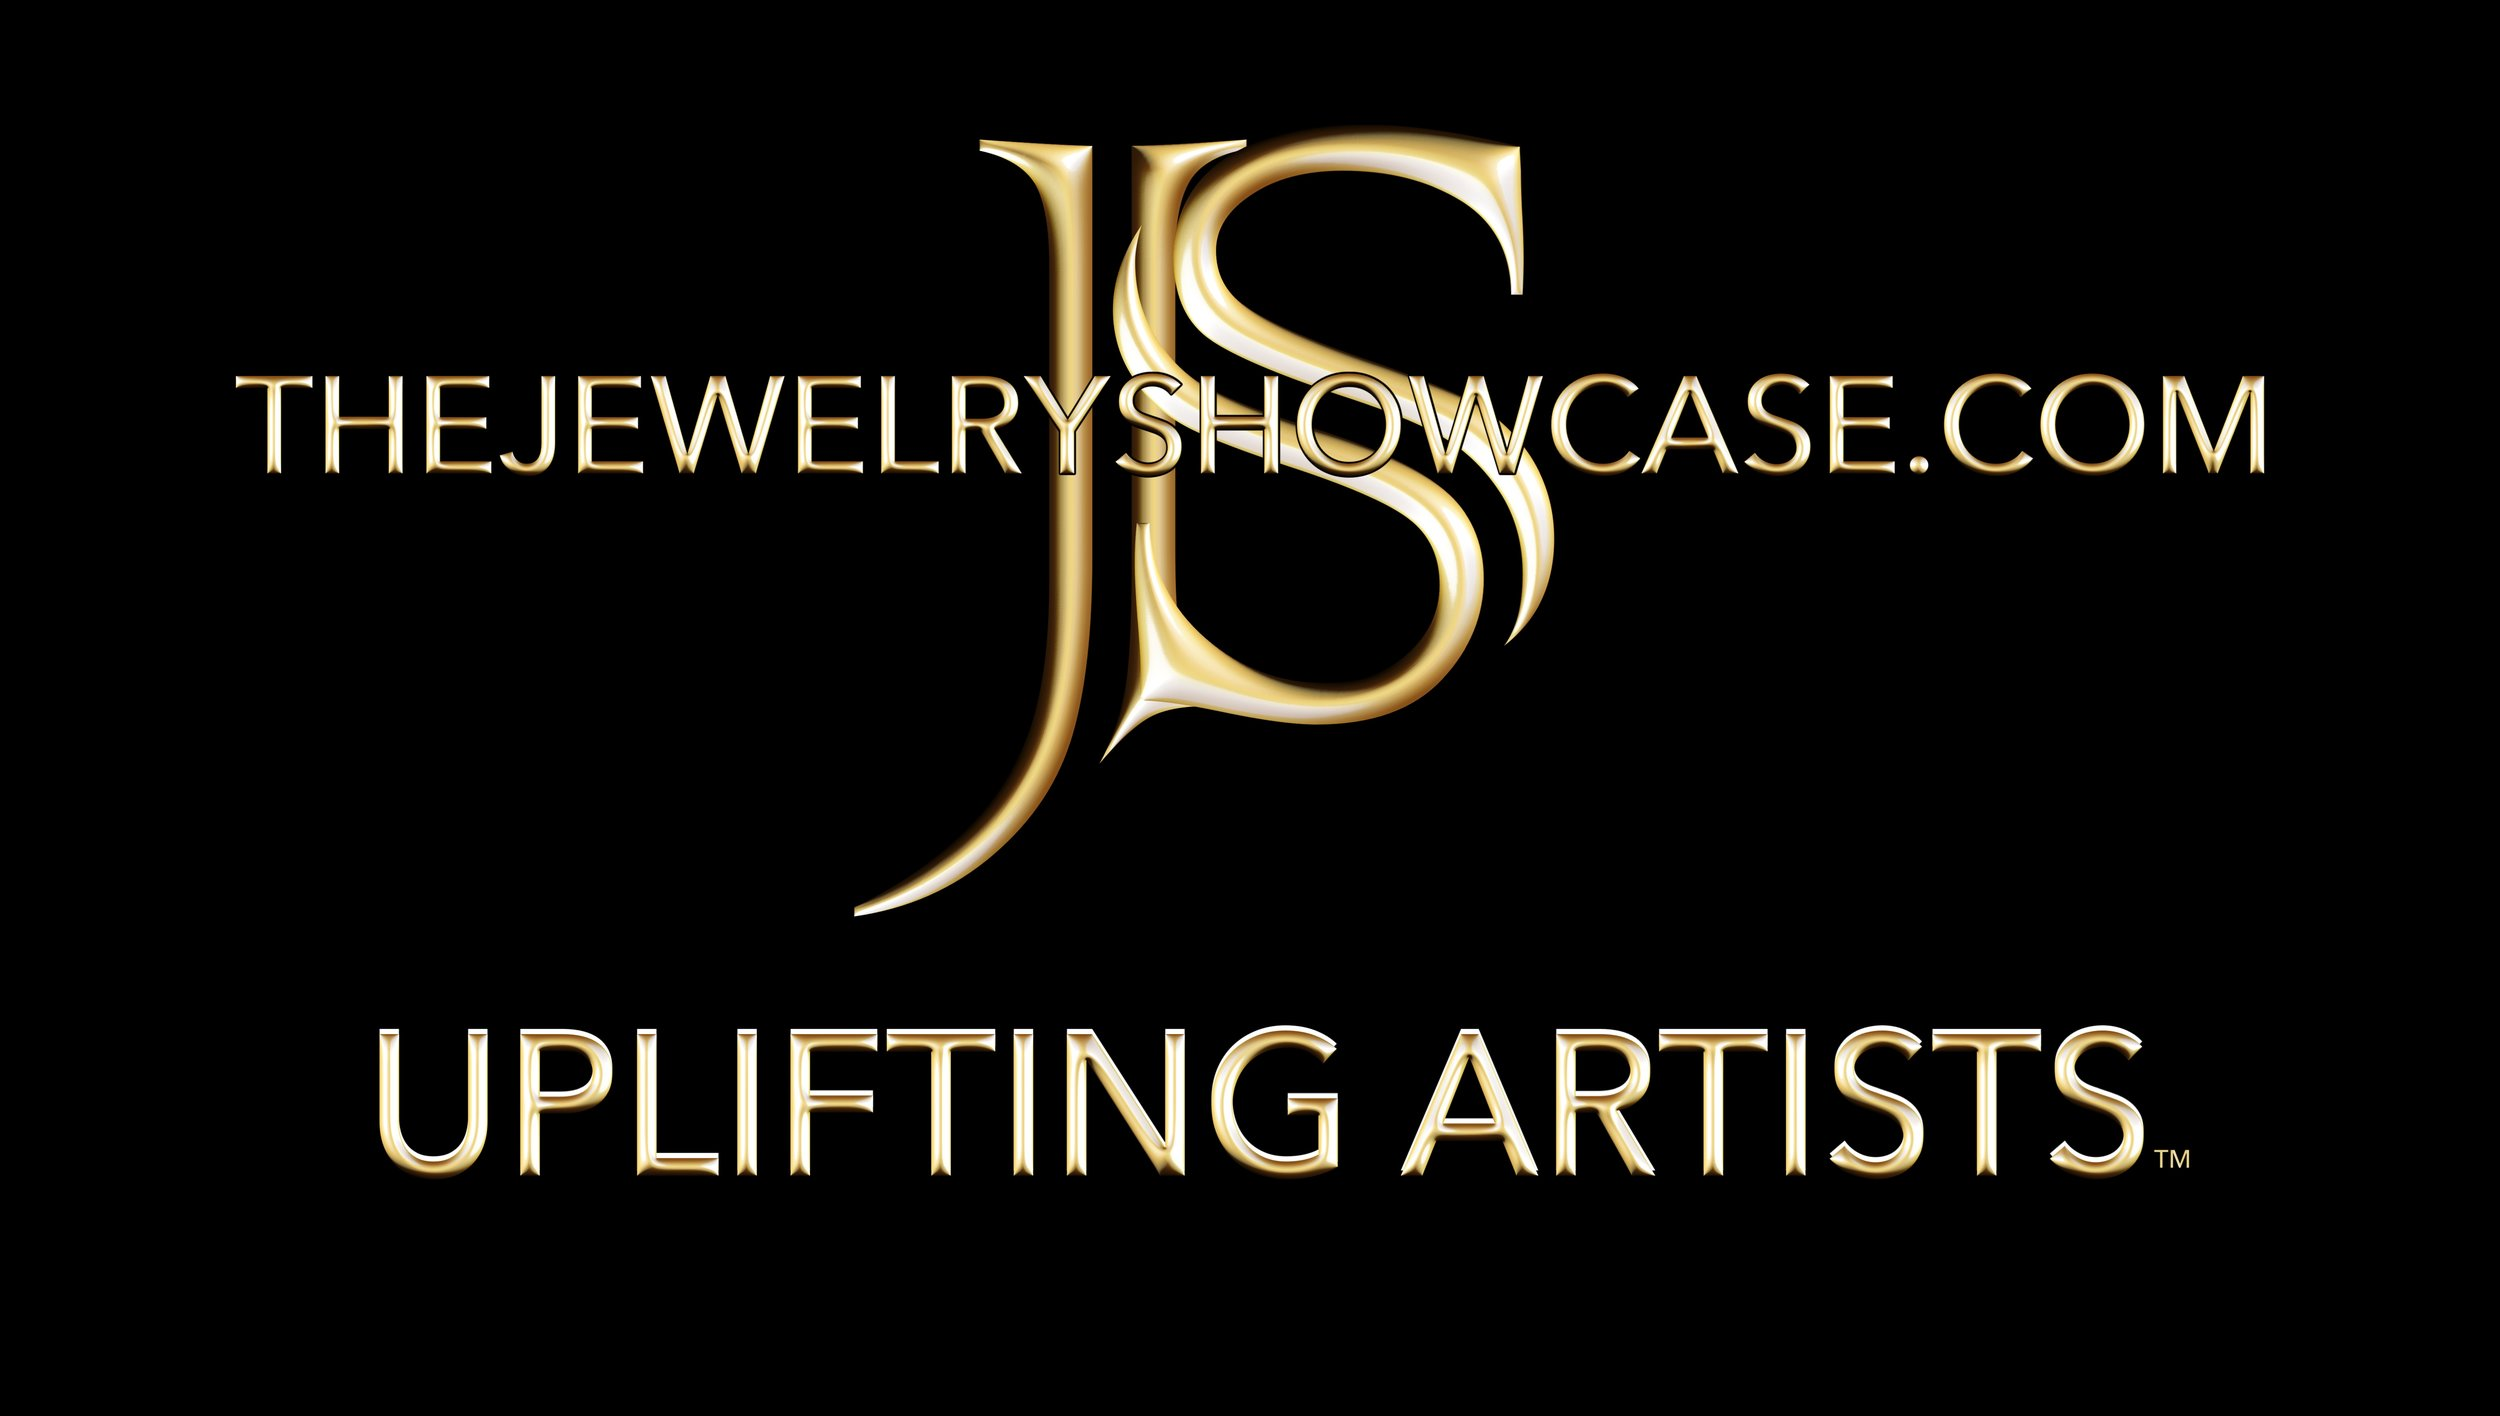 THE JEWELRY SHOWCASE IS UPLIFTING ARTISTS™